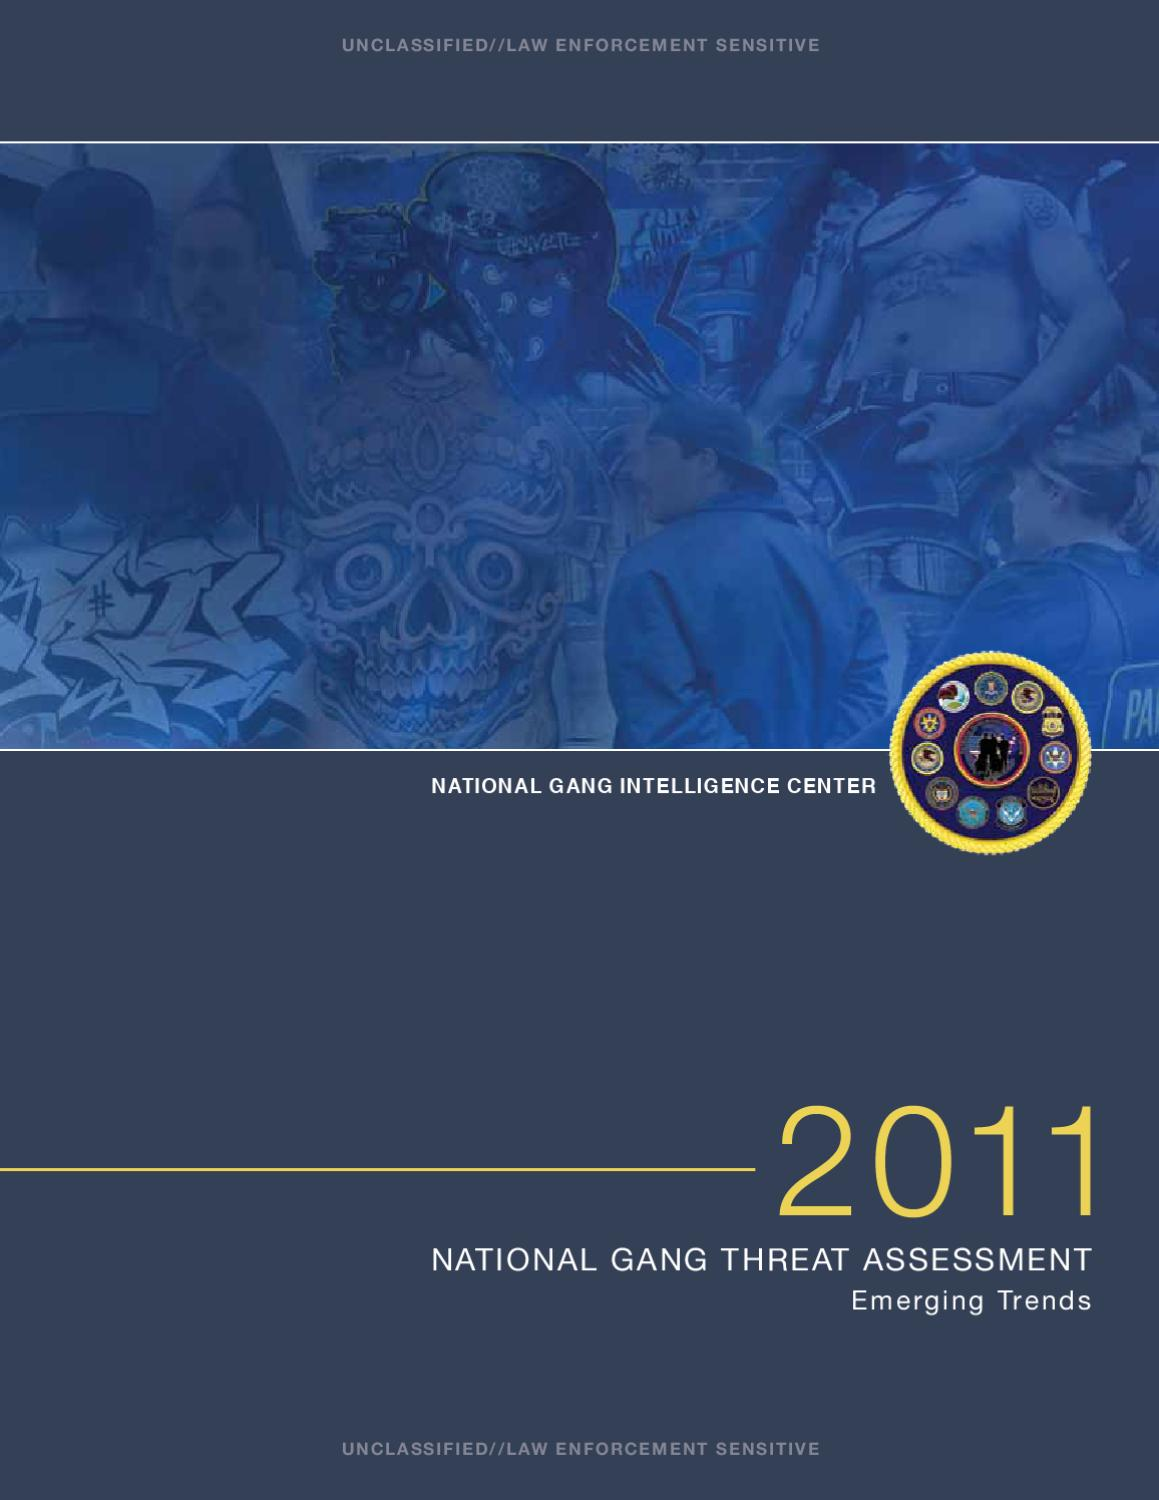 National gang threat assessment 2011: Emerging trends by